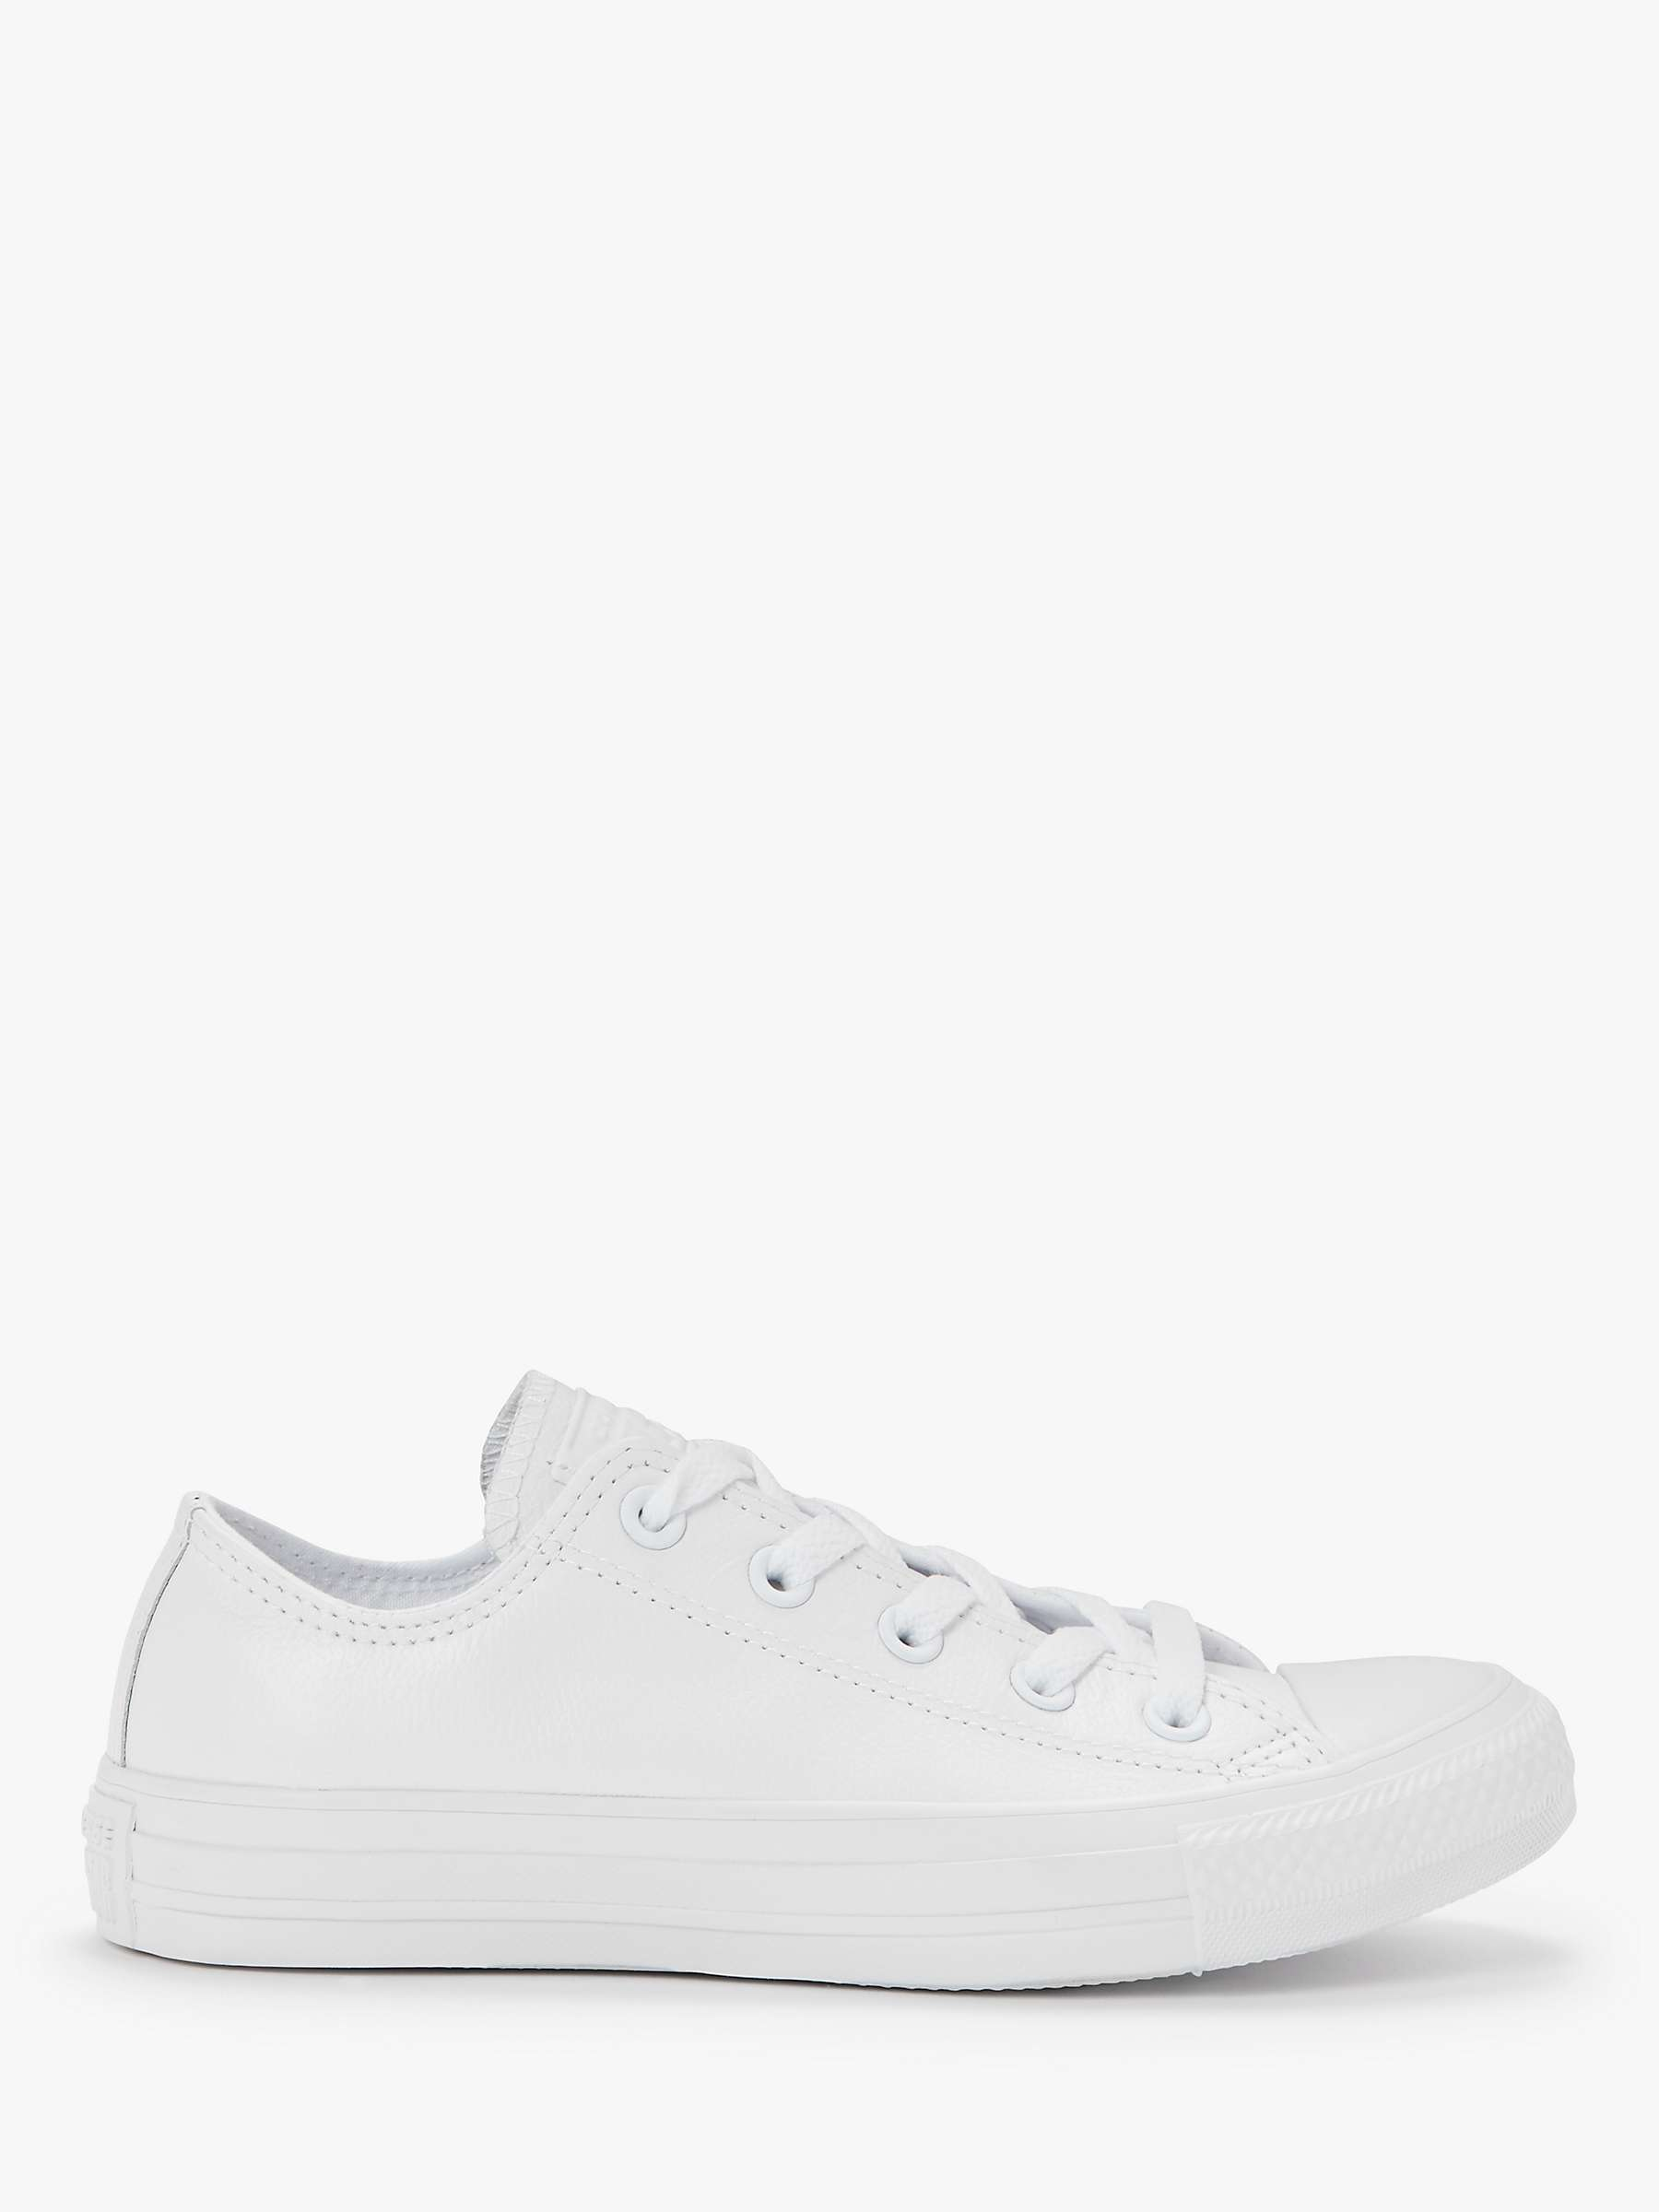 Converse Chuck Taylor All Star Women's Ox Leather Trainers